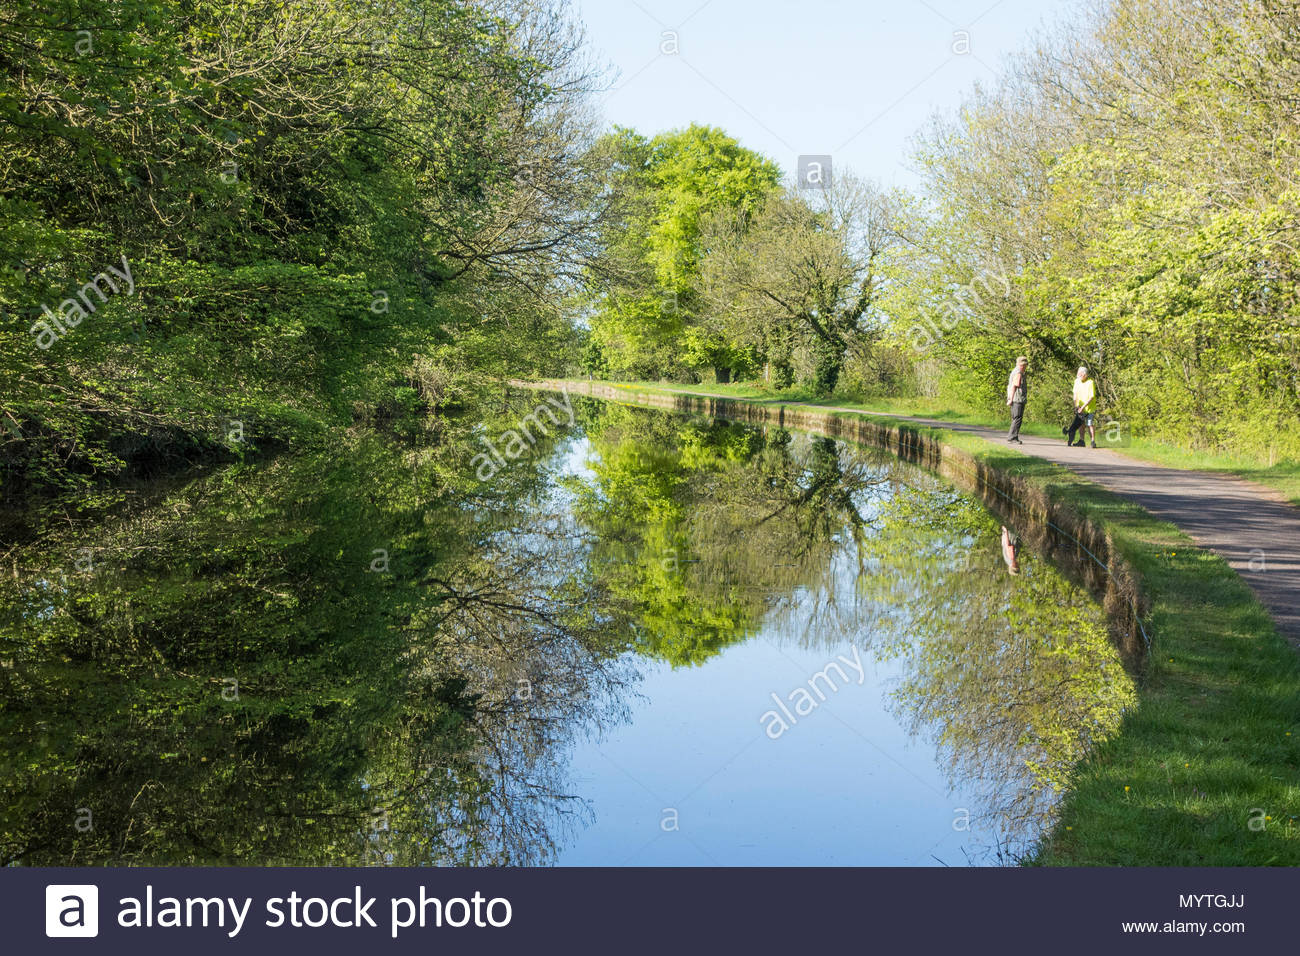 Walkers on the towpath of the Lancaster Canal, near to Bolton le Sands with the reflection of the trees - Stock Image